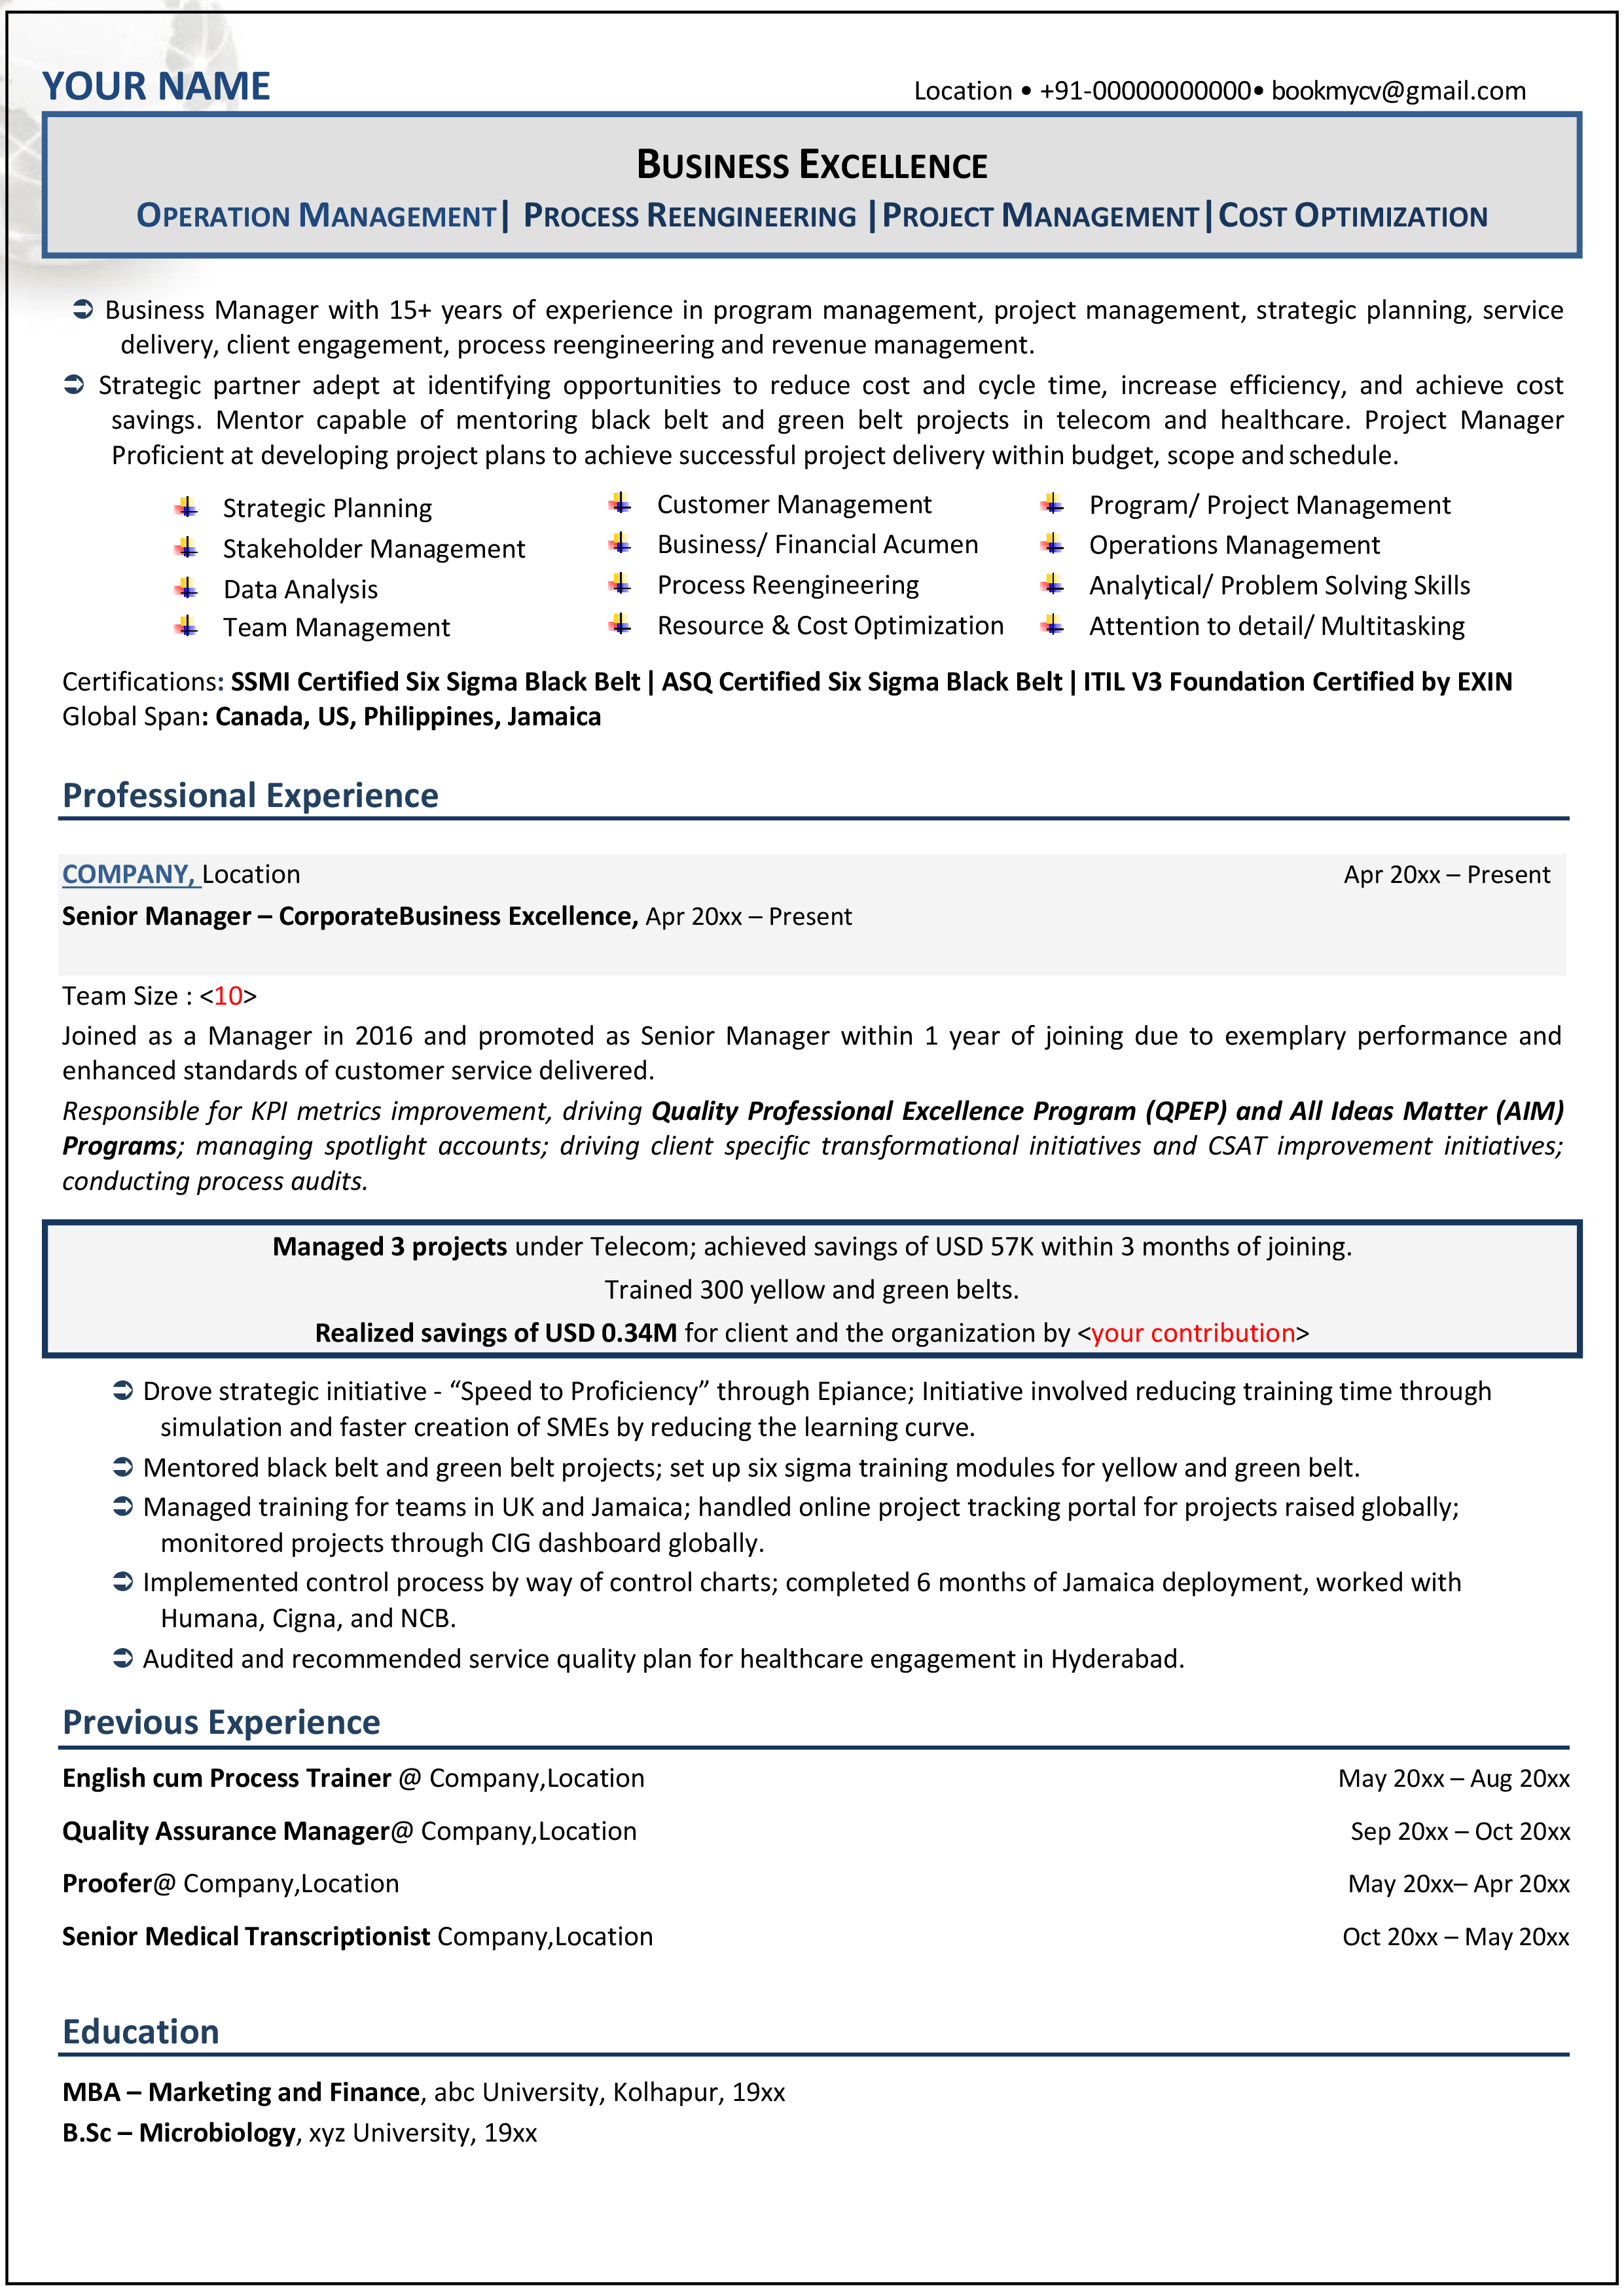 Resume Format For Experienced Professionals | Best Resume ...